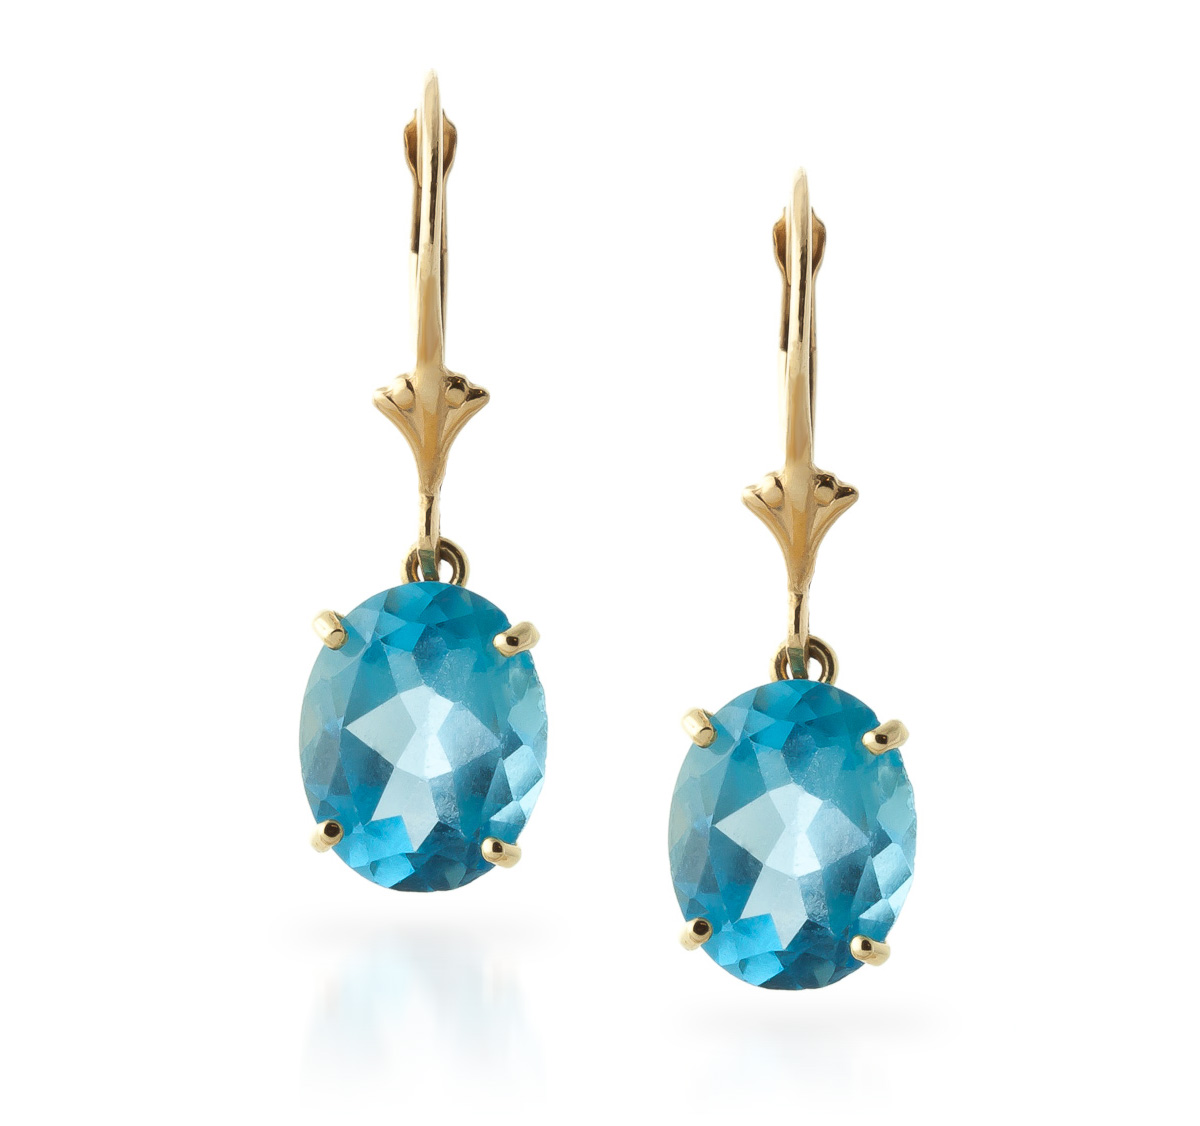 Blue Topaz Drop Earrings 6.25ctw in 9ct Gold